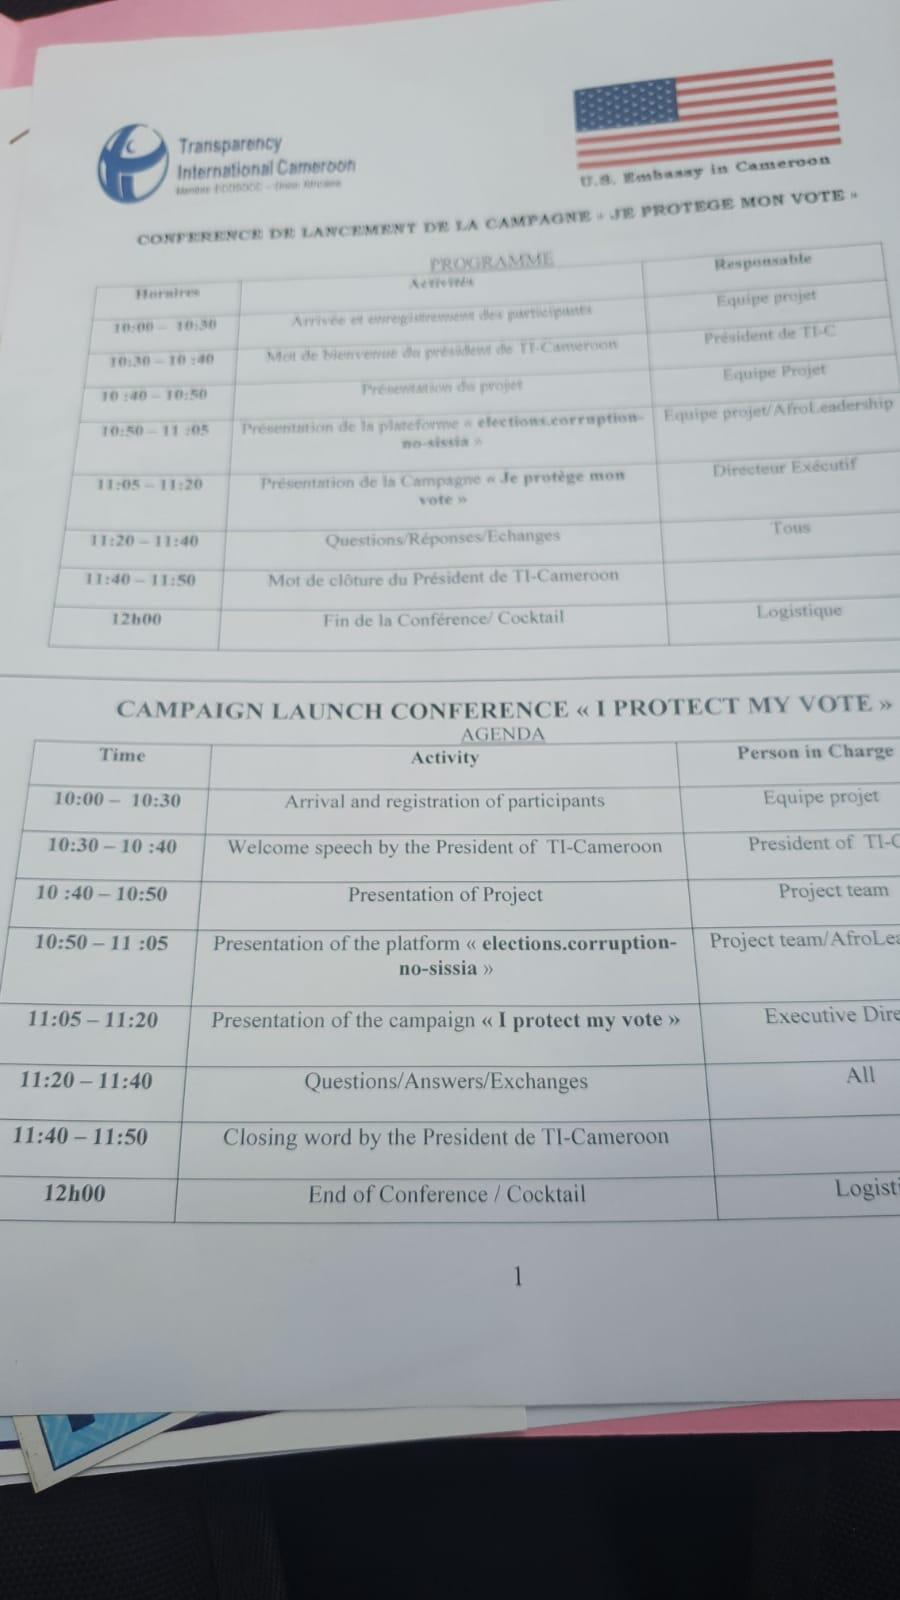 Meeting with Transparency International Cameroon attended by election observers.